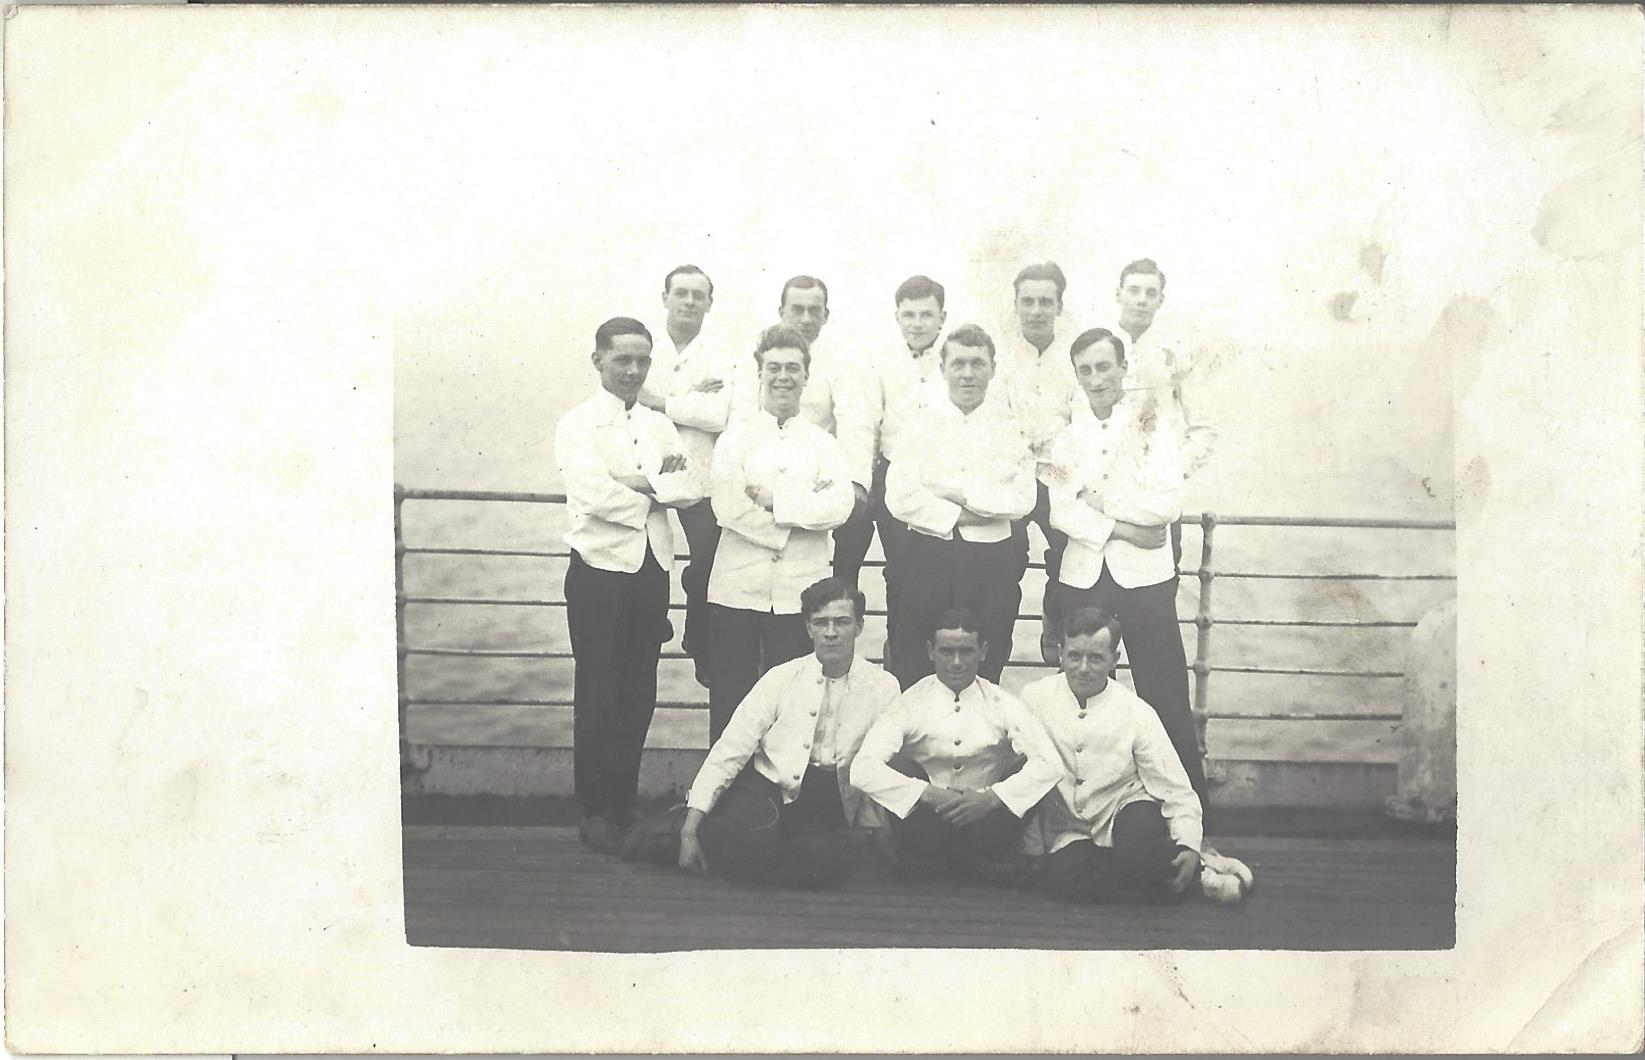 S.S. Euripides: Crew: Dining Room Stewards?